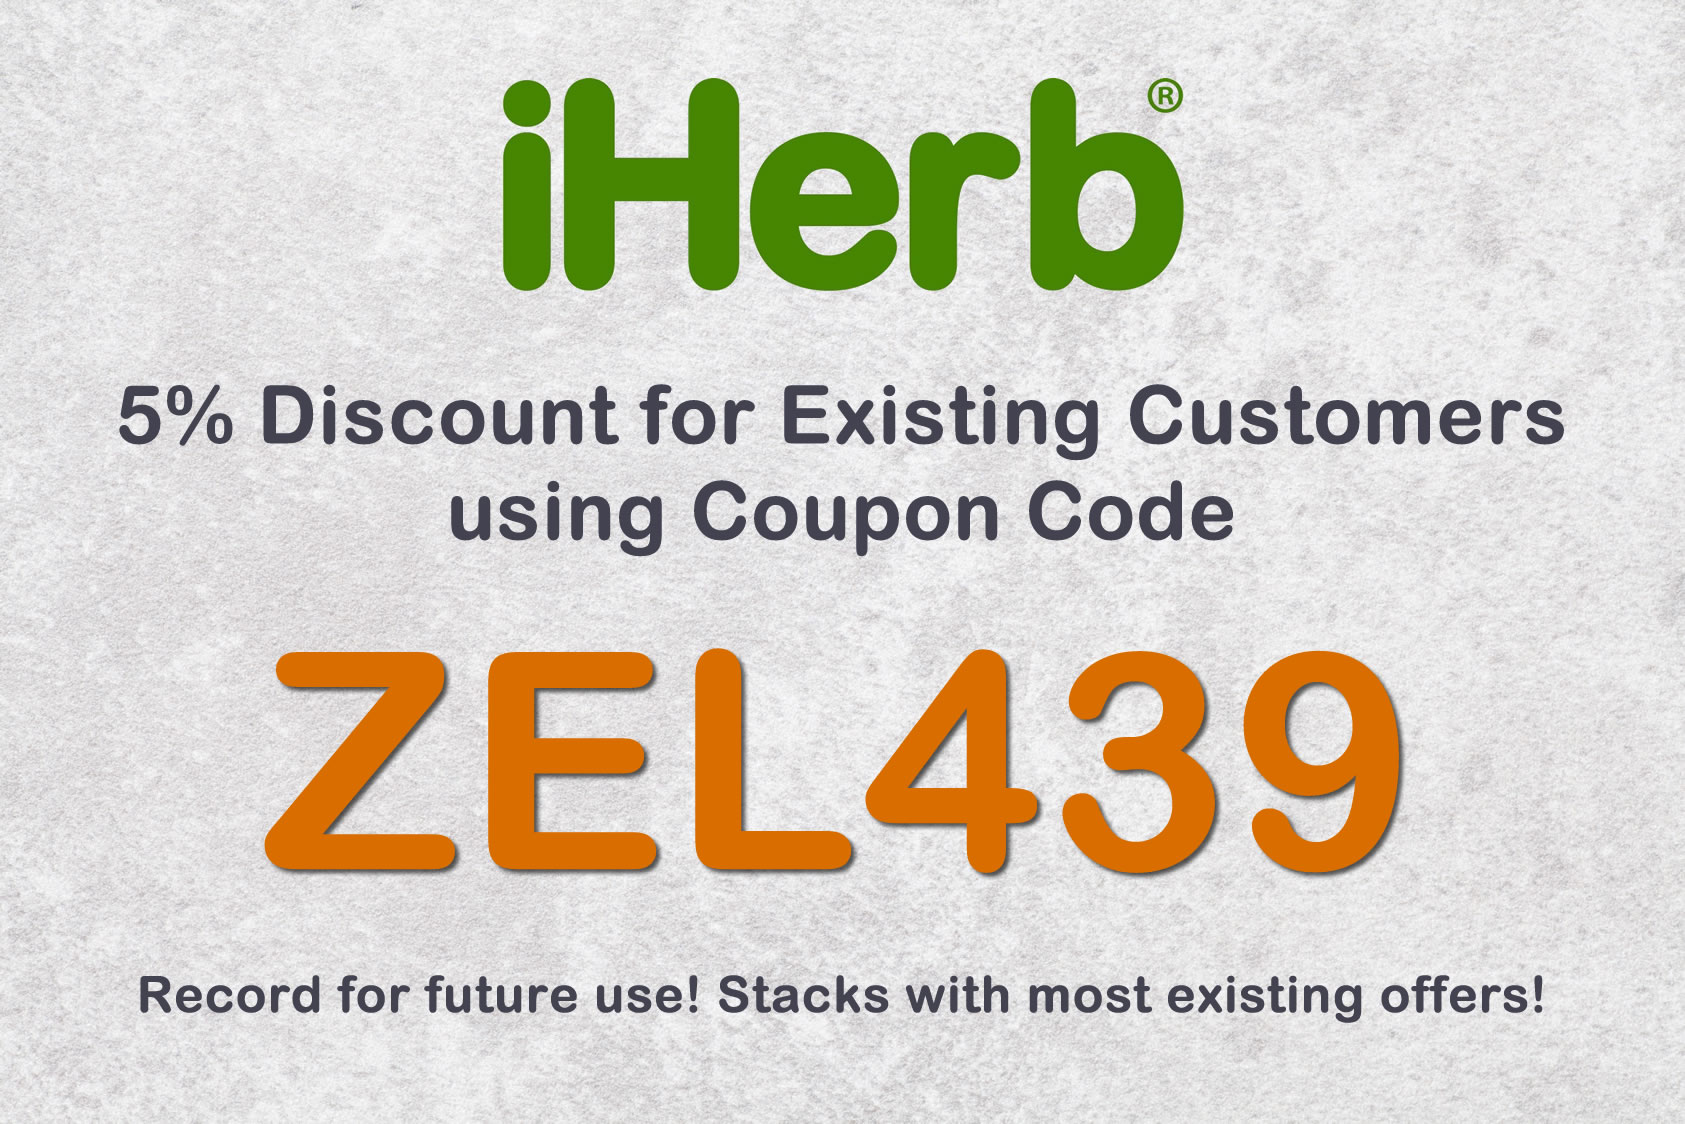 Iherb discount coupons